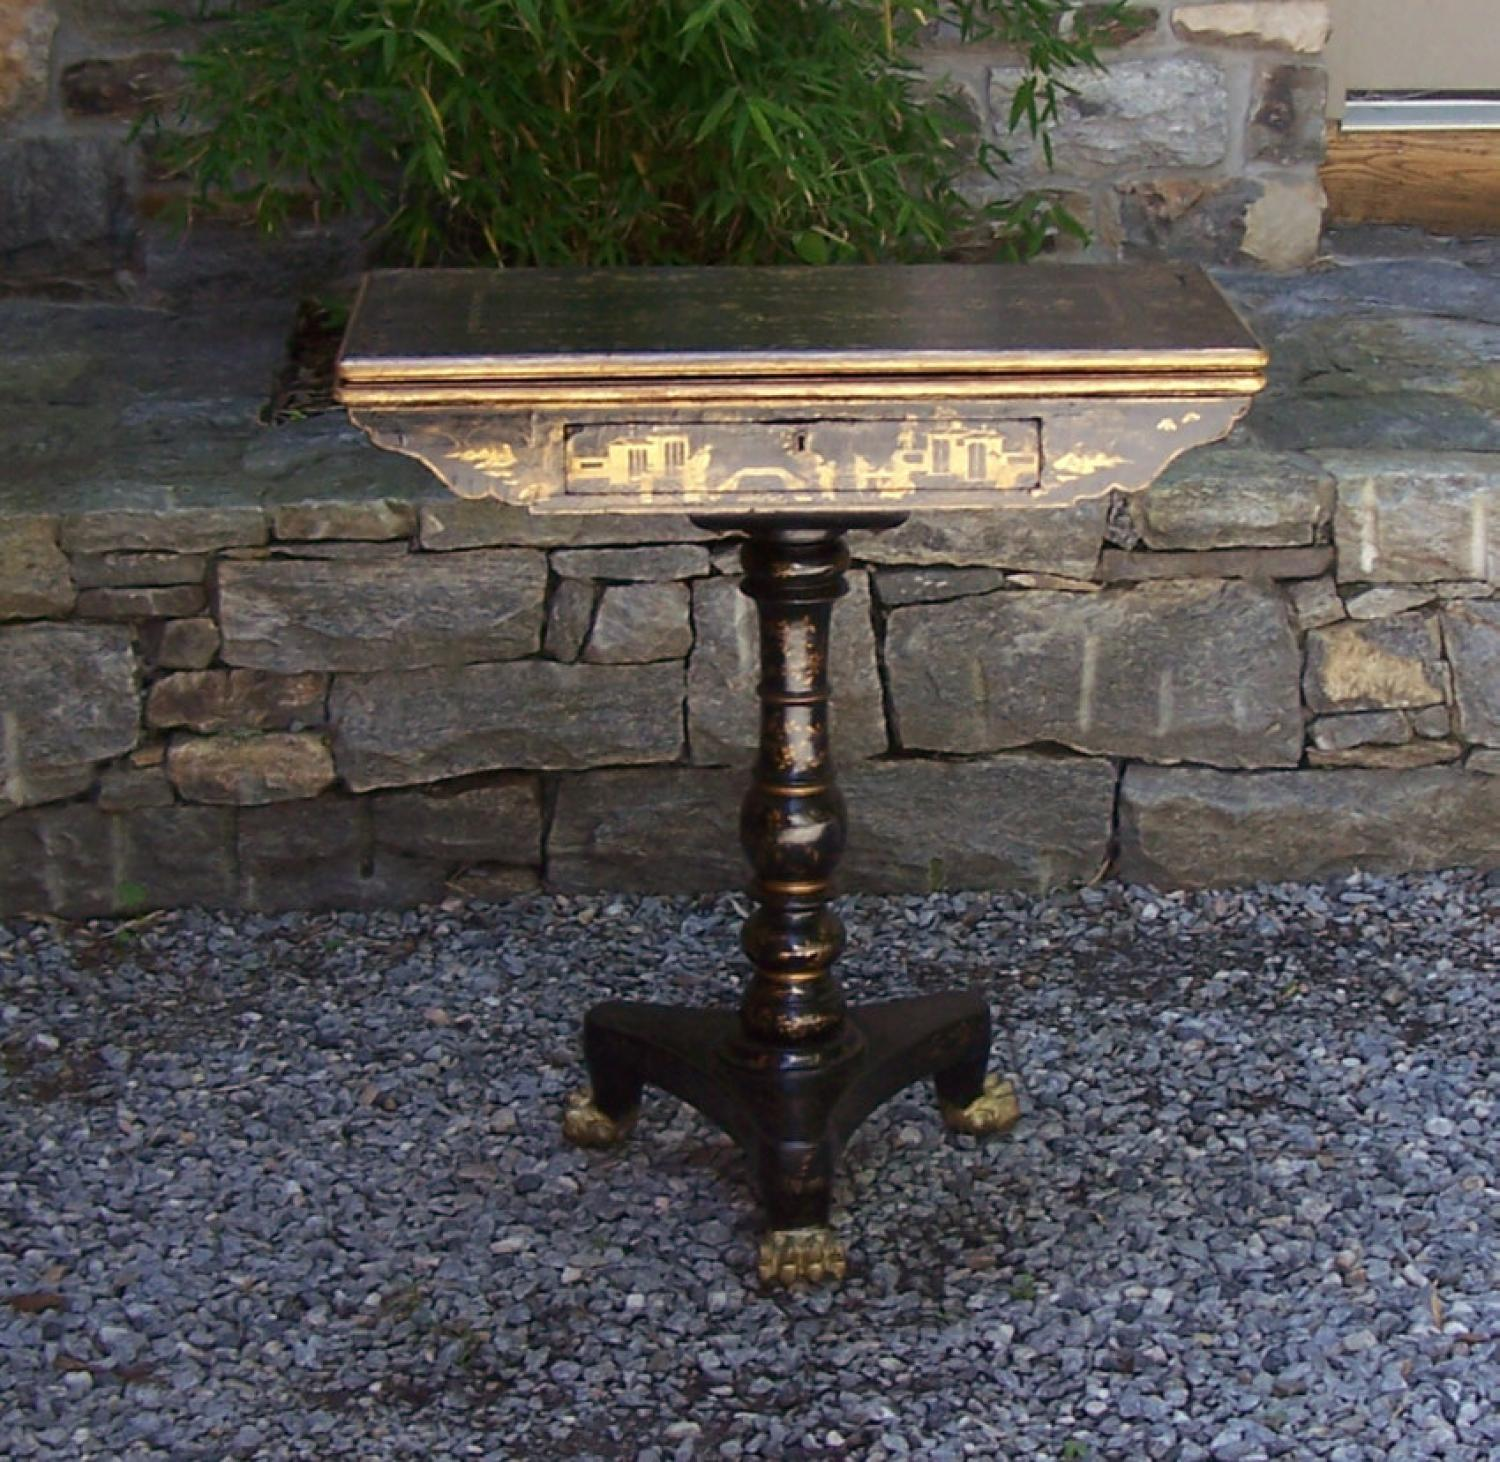 Chinese Export lacquer card table with drawer c1820